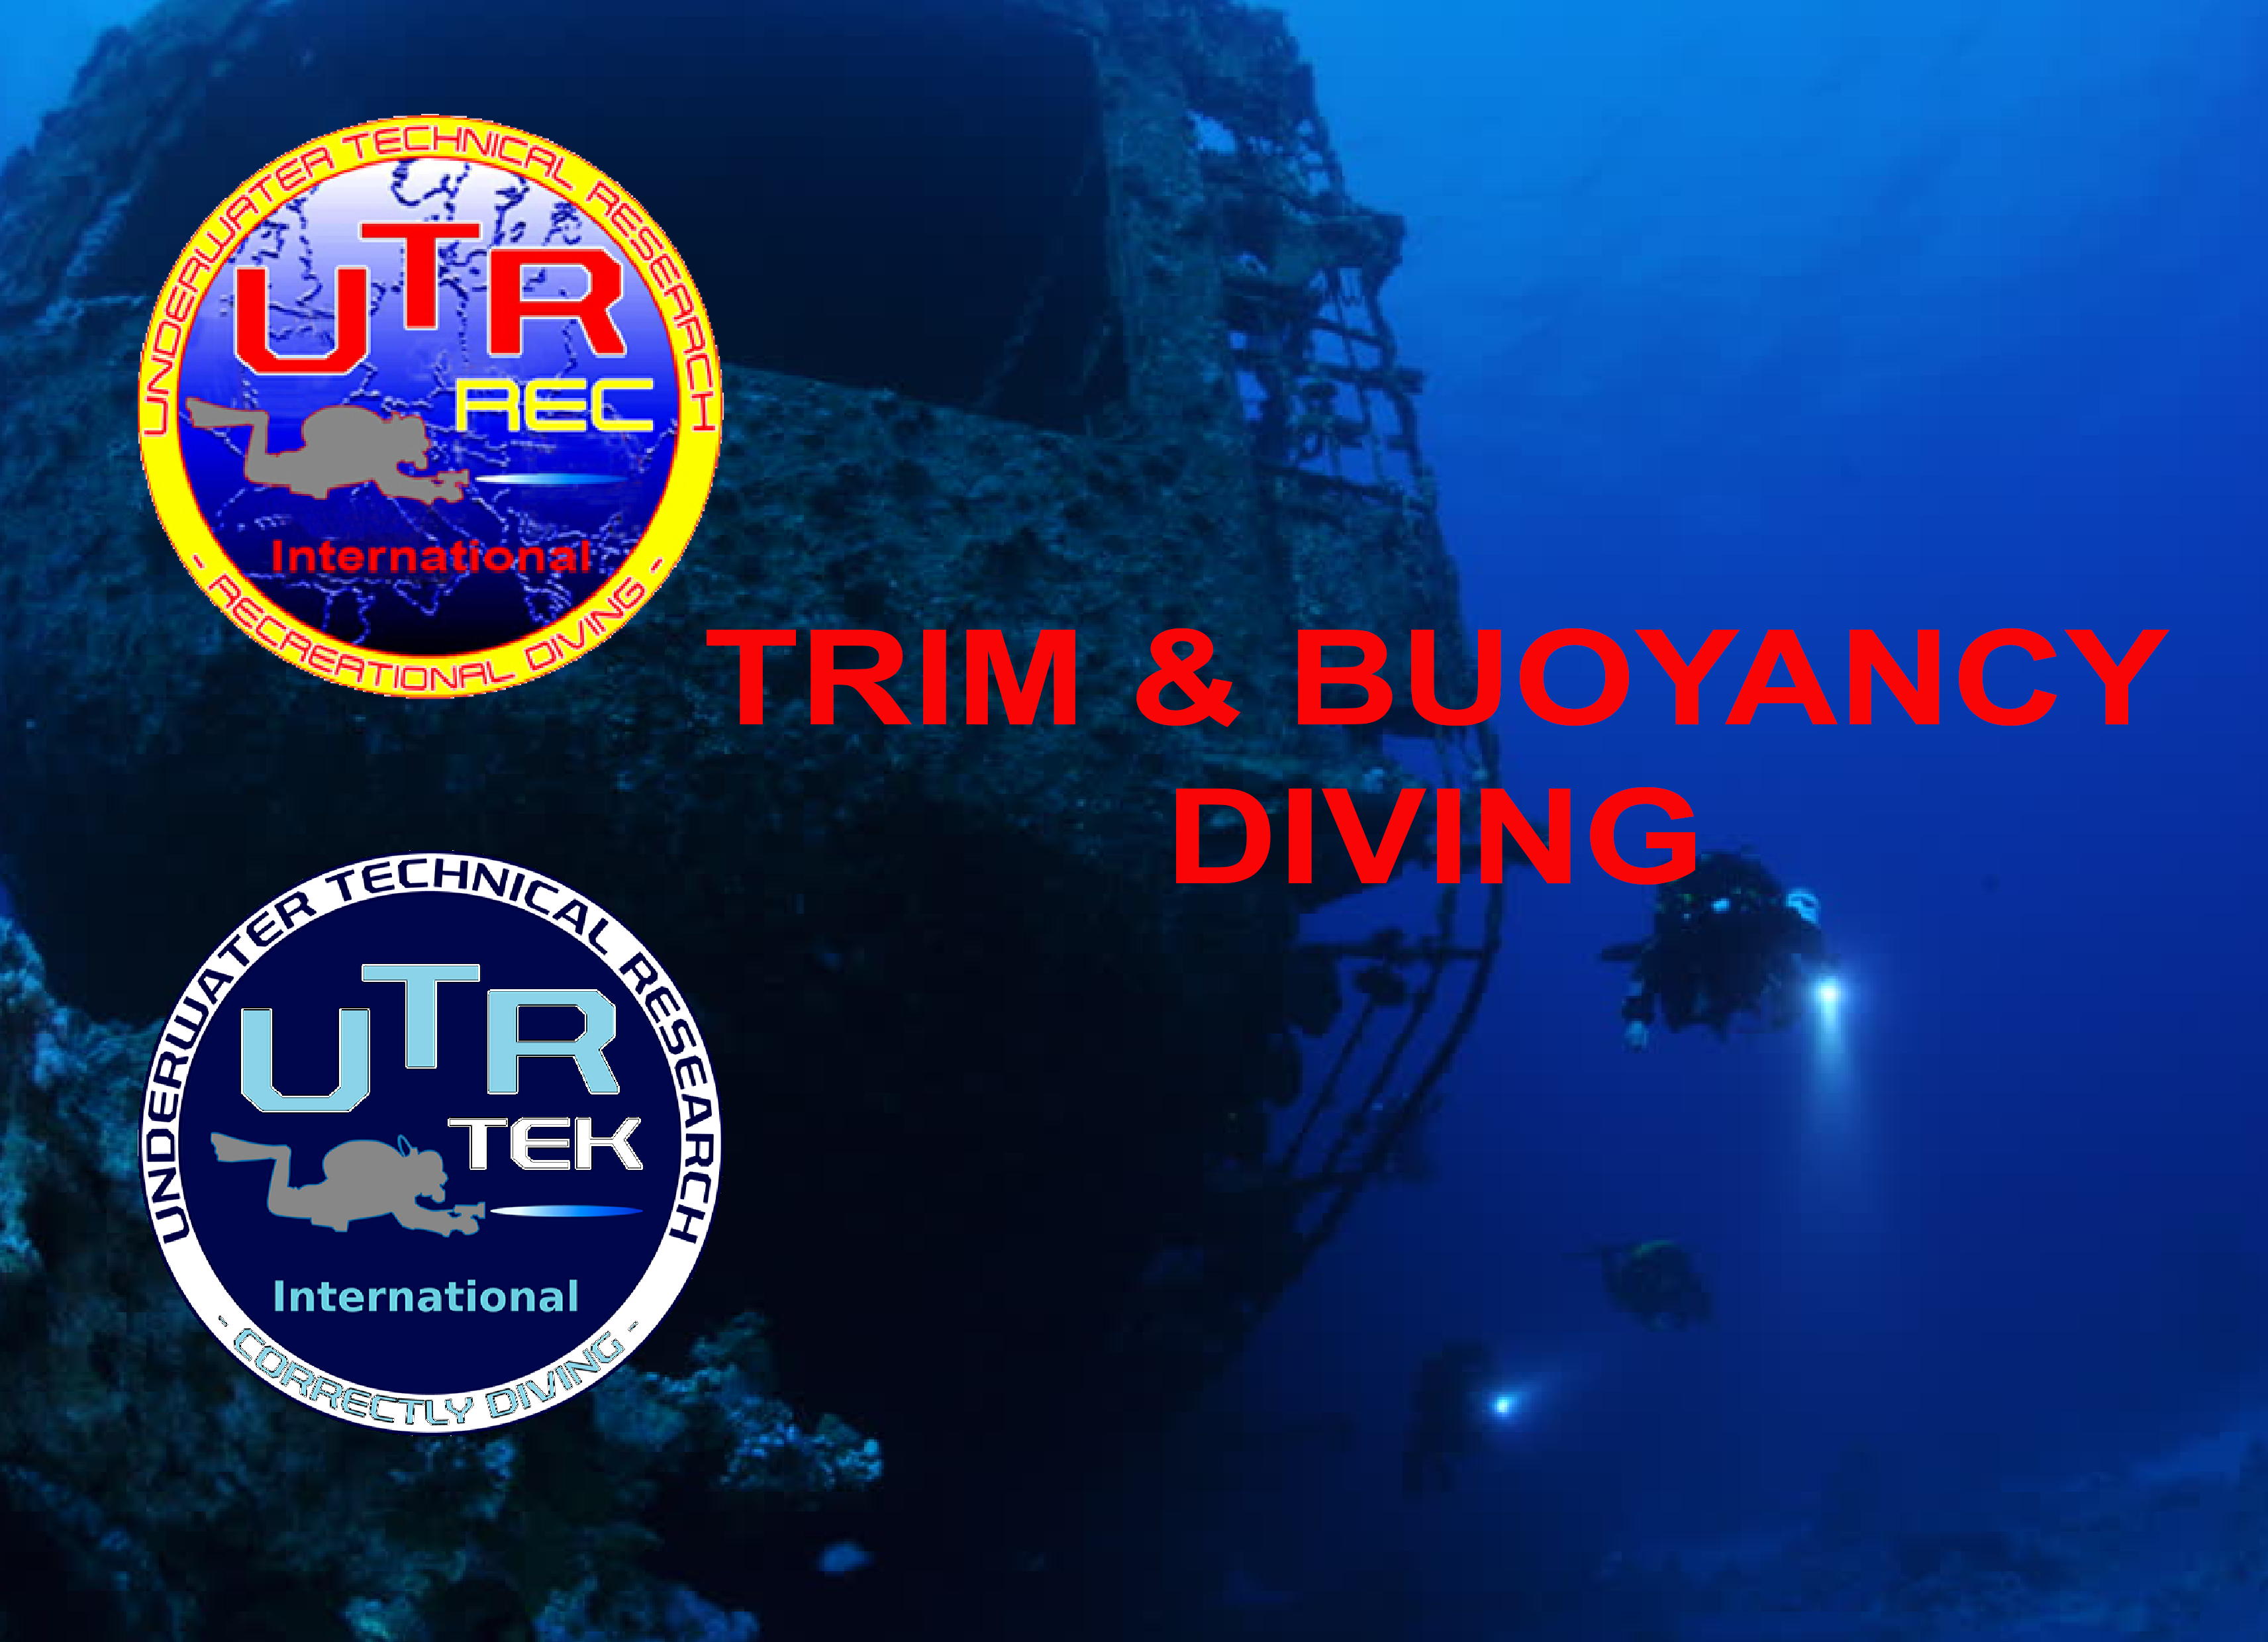 TRIM & BUOYANCY DIVING